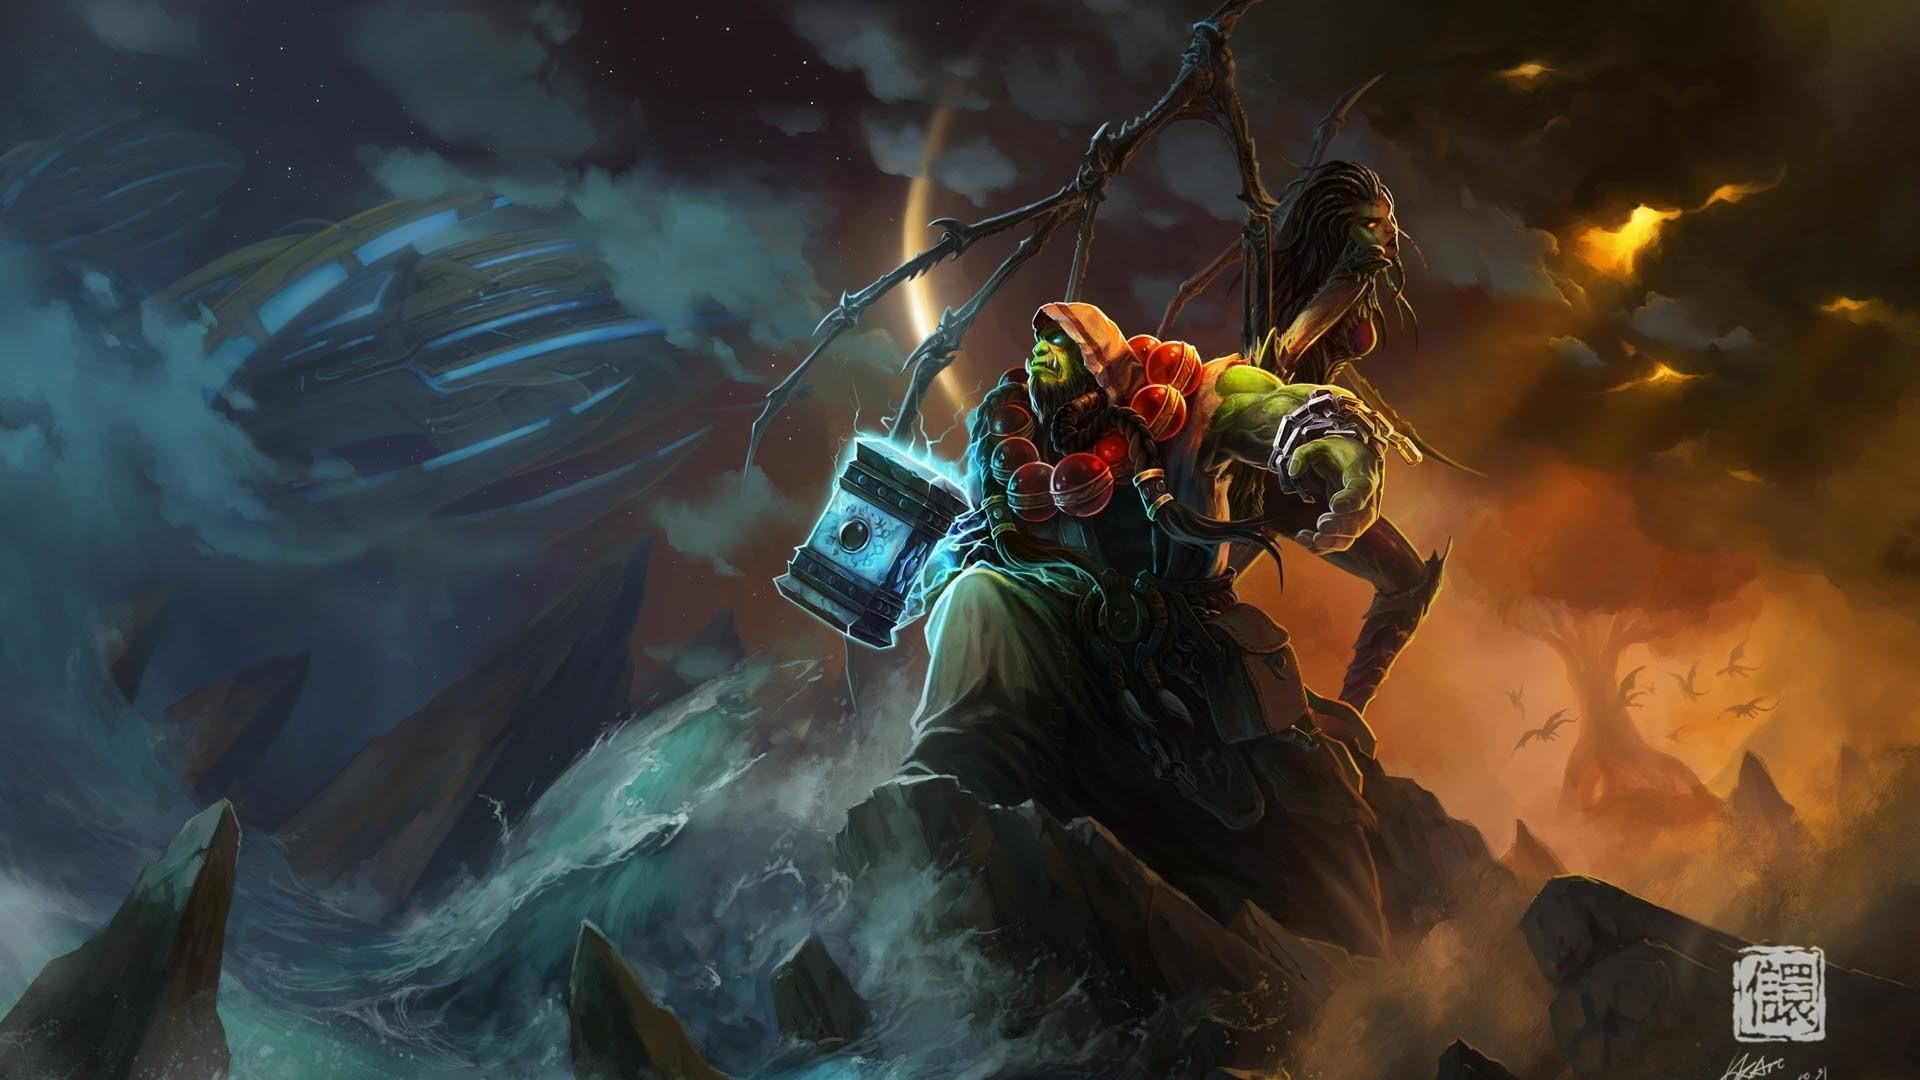 World of Warcraft Ocean Shaman Wallpaper – 1920 x Really nice World of  Warcraft wallpaper featuring a couple of characters readying themselves for  battle.